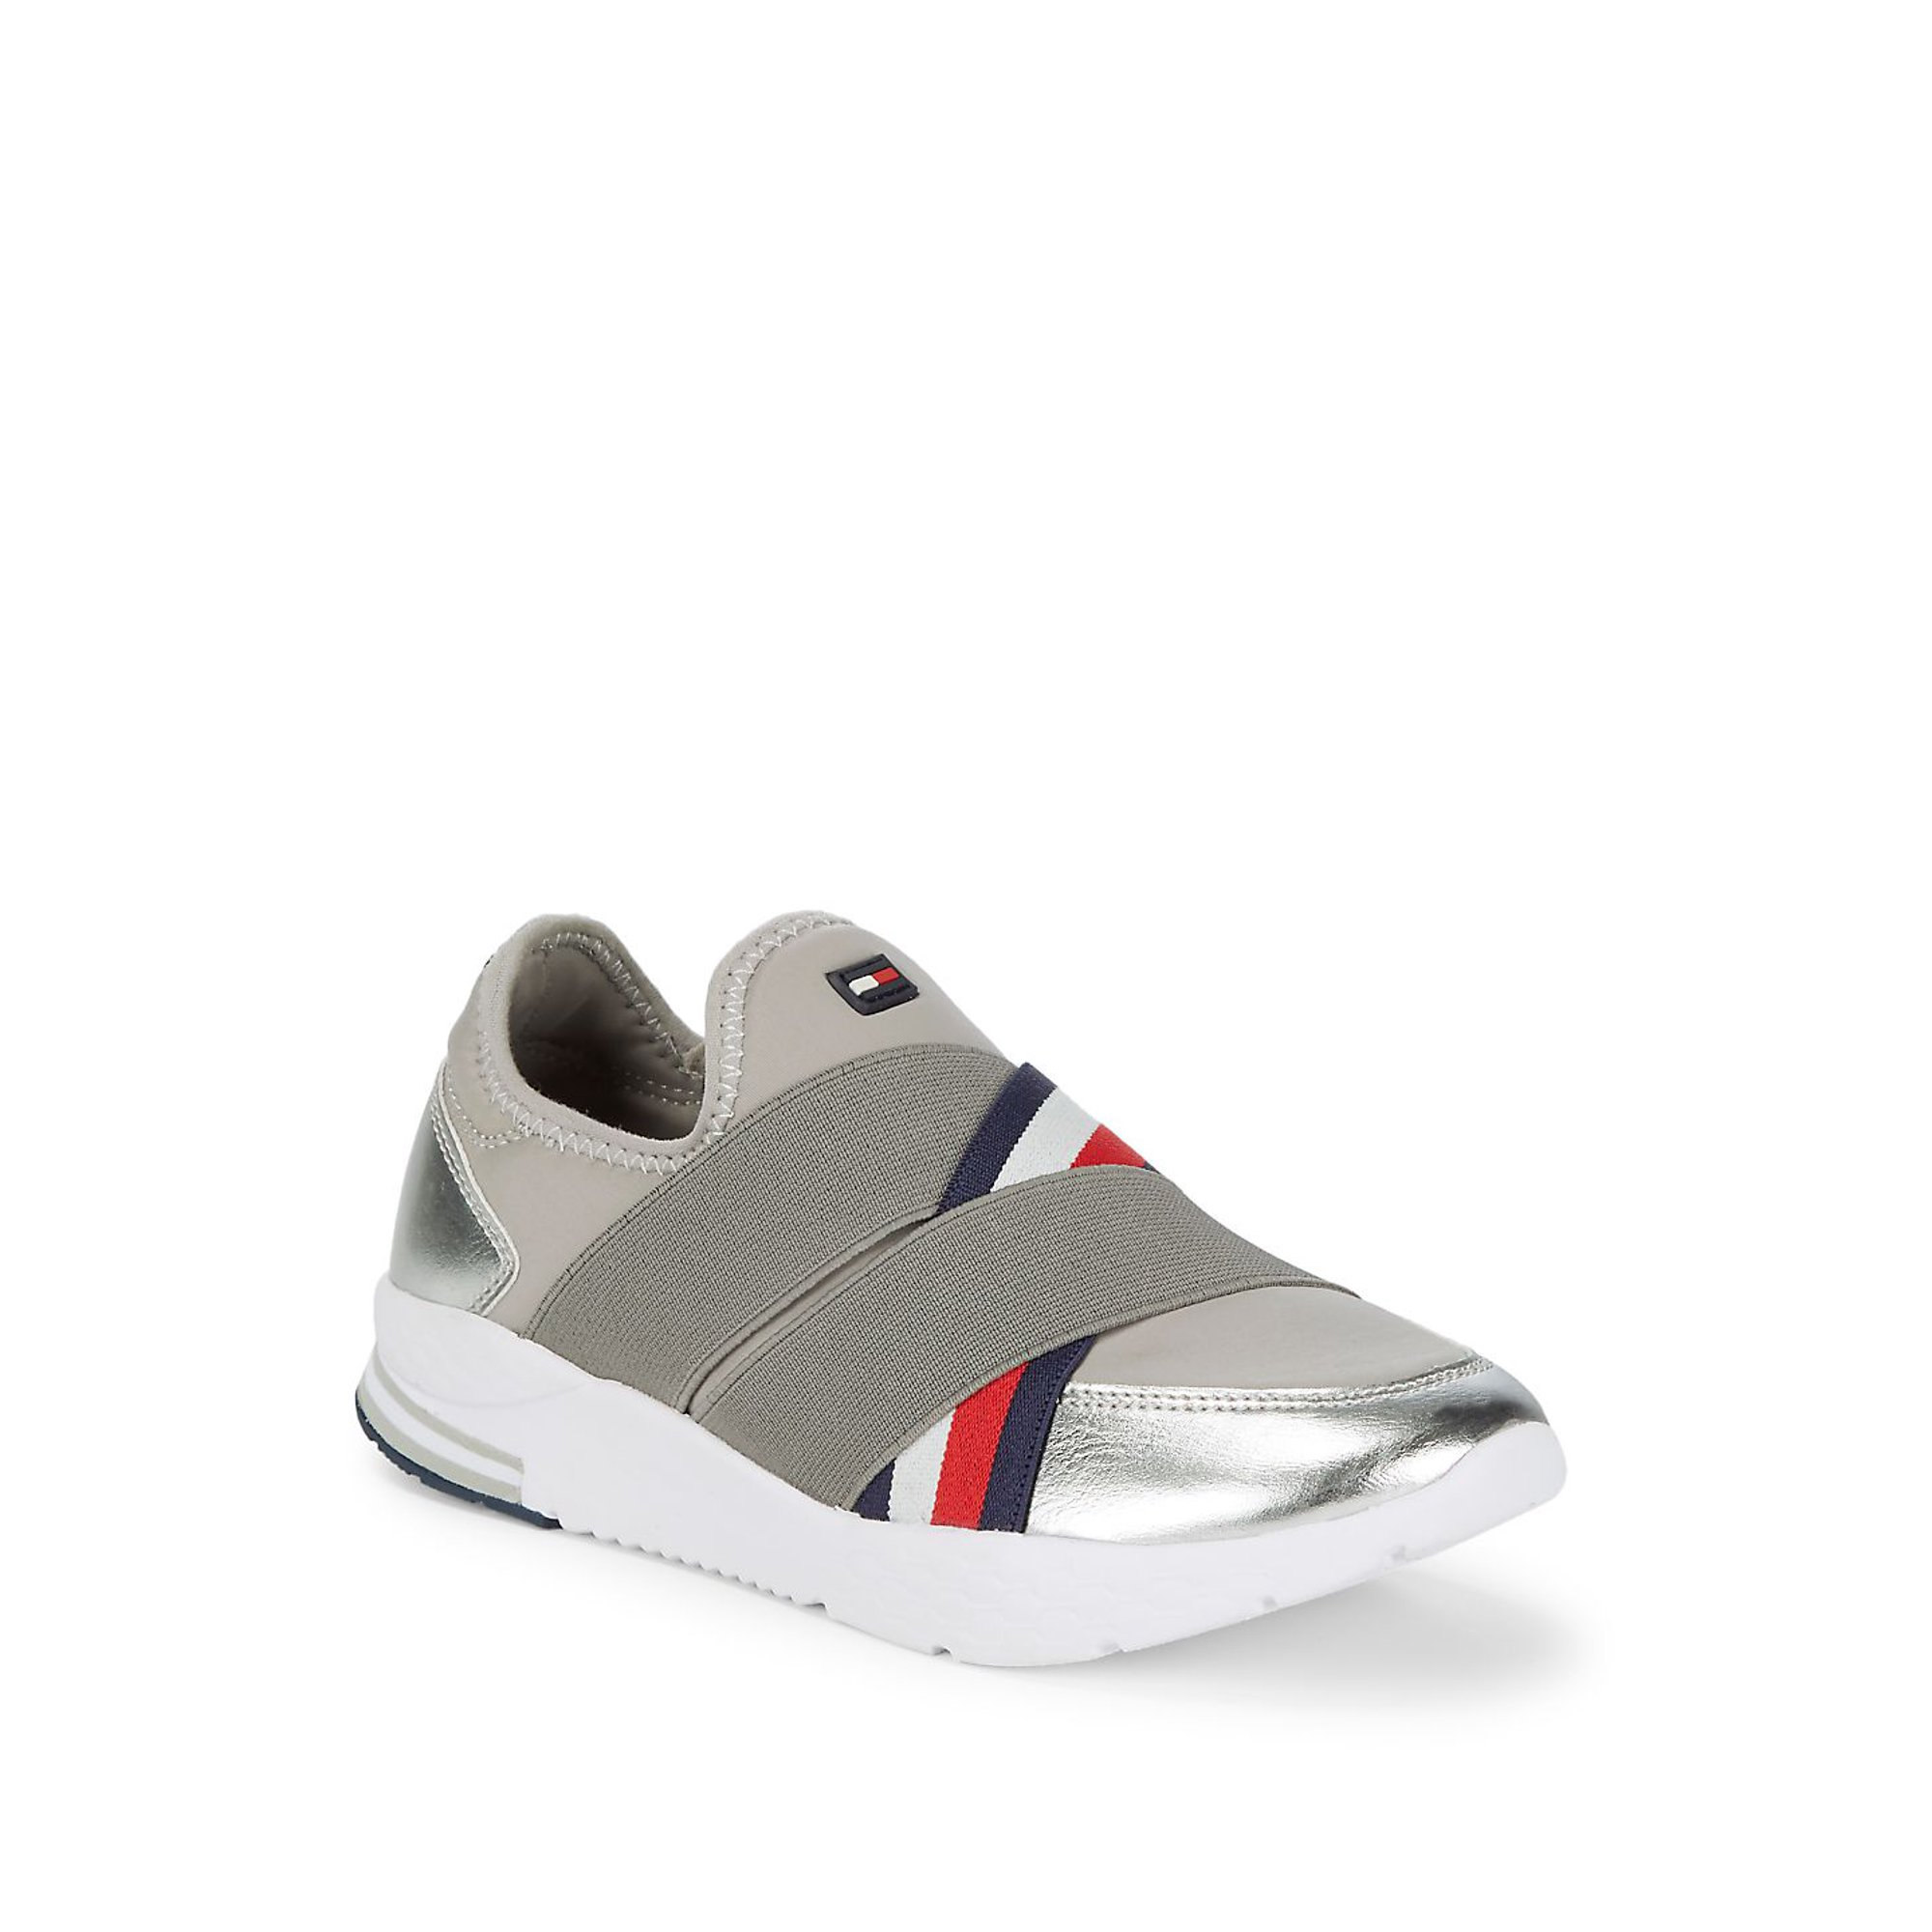 2a6e1aea1422 Buy Mavins Leather Sneakers